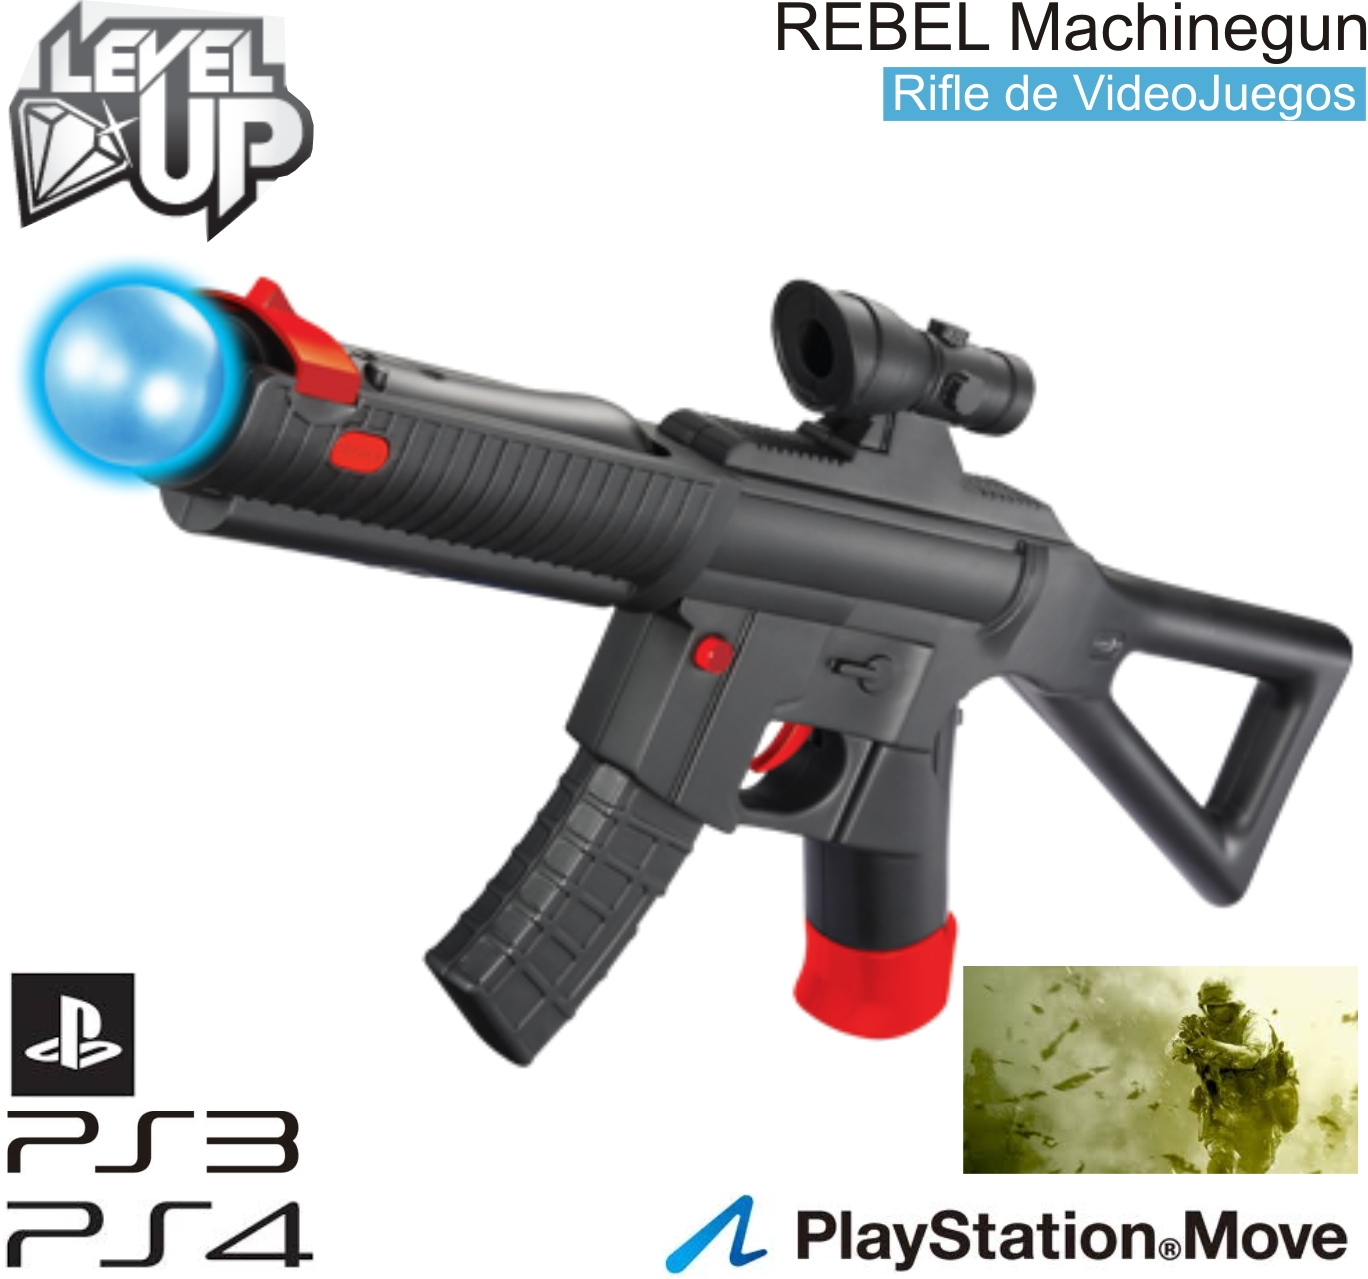 Rifle de Asalto LEVELUP REBEL Machinegun